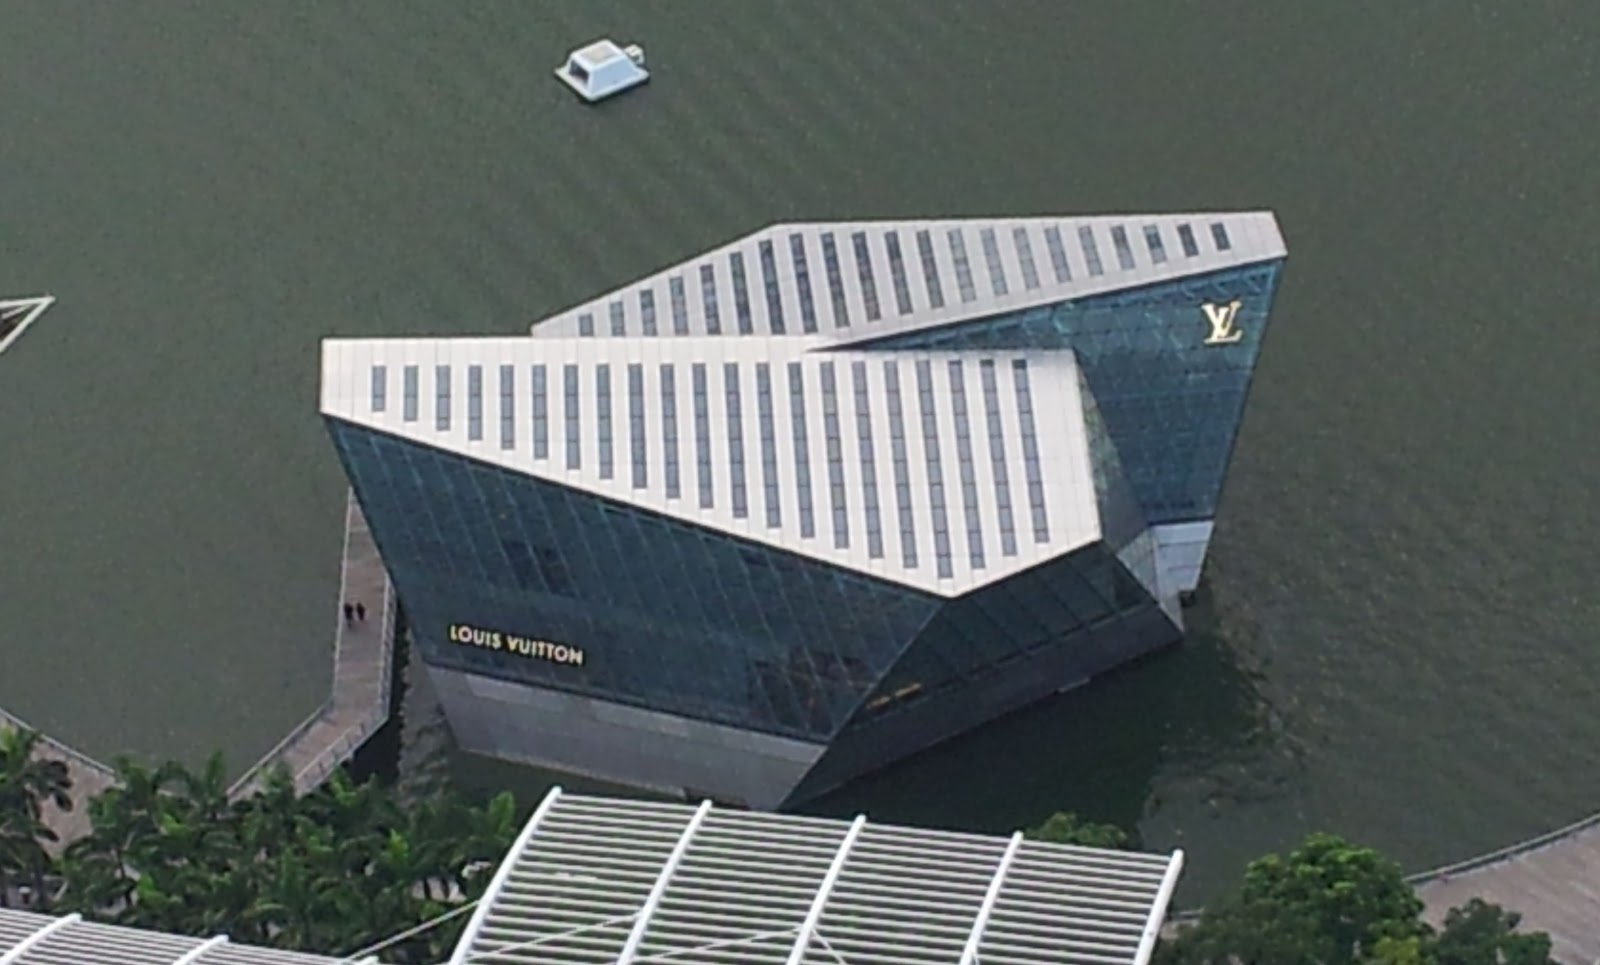 Louis Vuitton Island